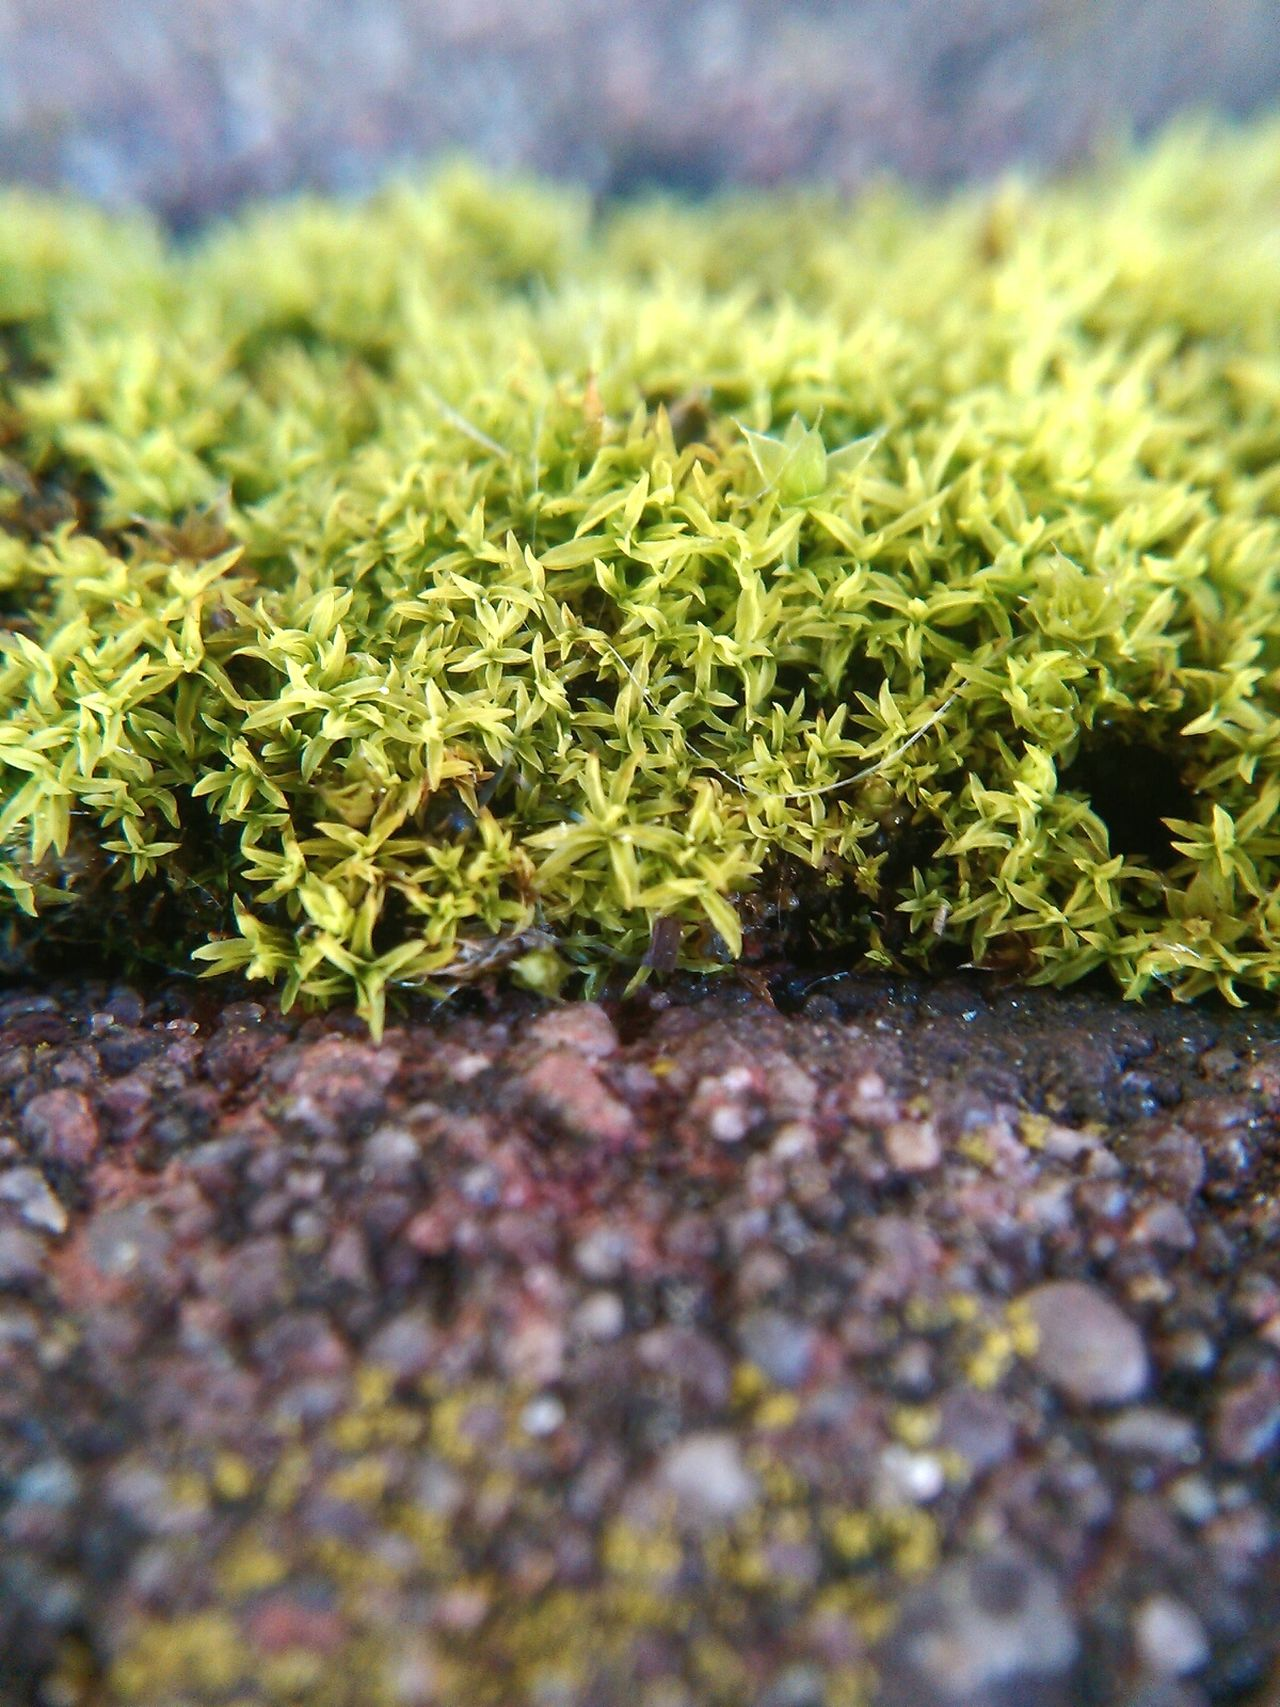 Moss Moss In Macro Moss Close Up Mossy Rock Mossy Stone Moss-covered Macro Macro Nature Macro_flower Macro Photography Macro World Macroshot Macro Flowers Macro Natur Plant Plants Green Macro Garden Macro Plants Macro Plant Stone Stone Texture Stone Structure Stone Surface Nature Harmony